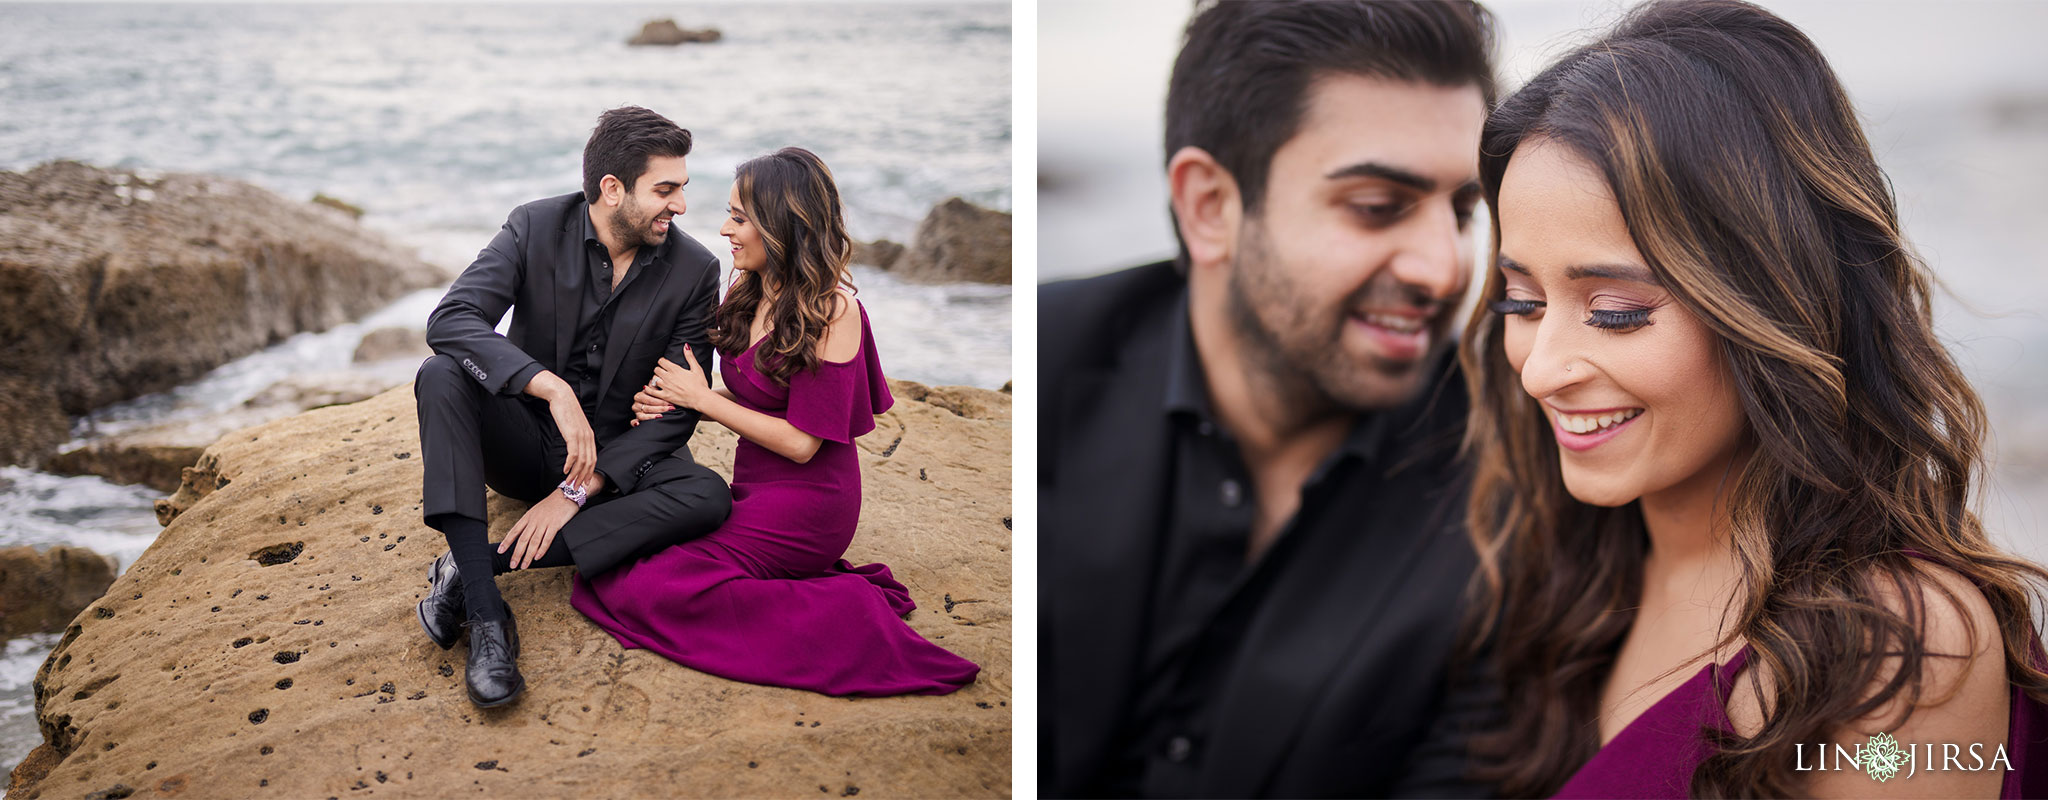 07 Laguna Beach Orange County Engagement Photography 1